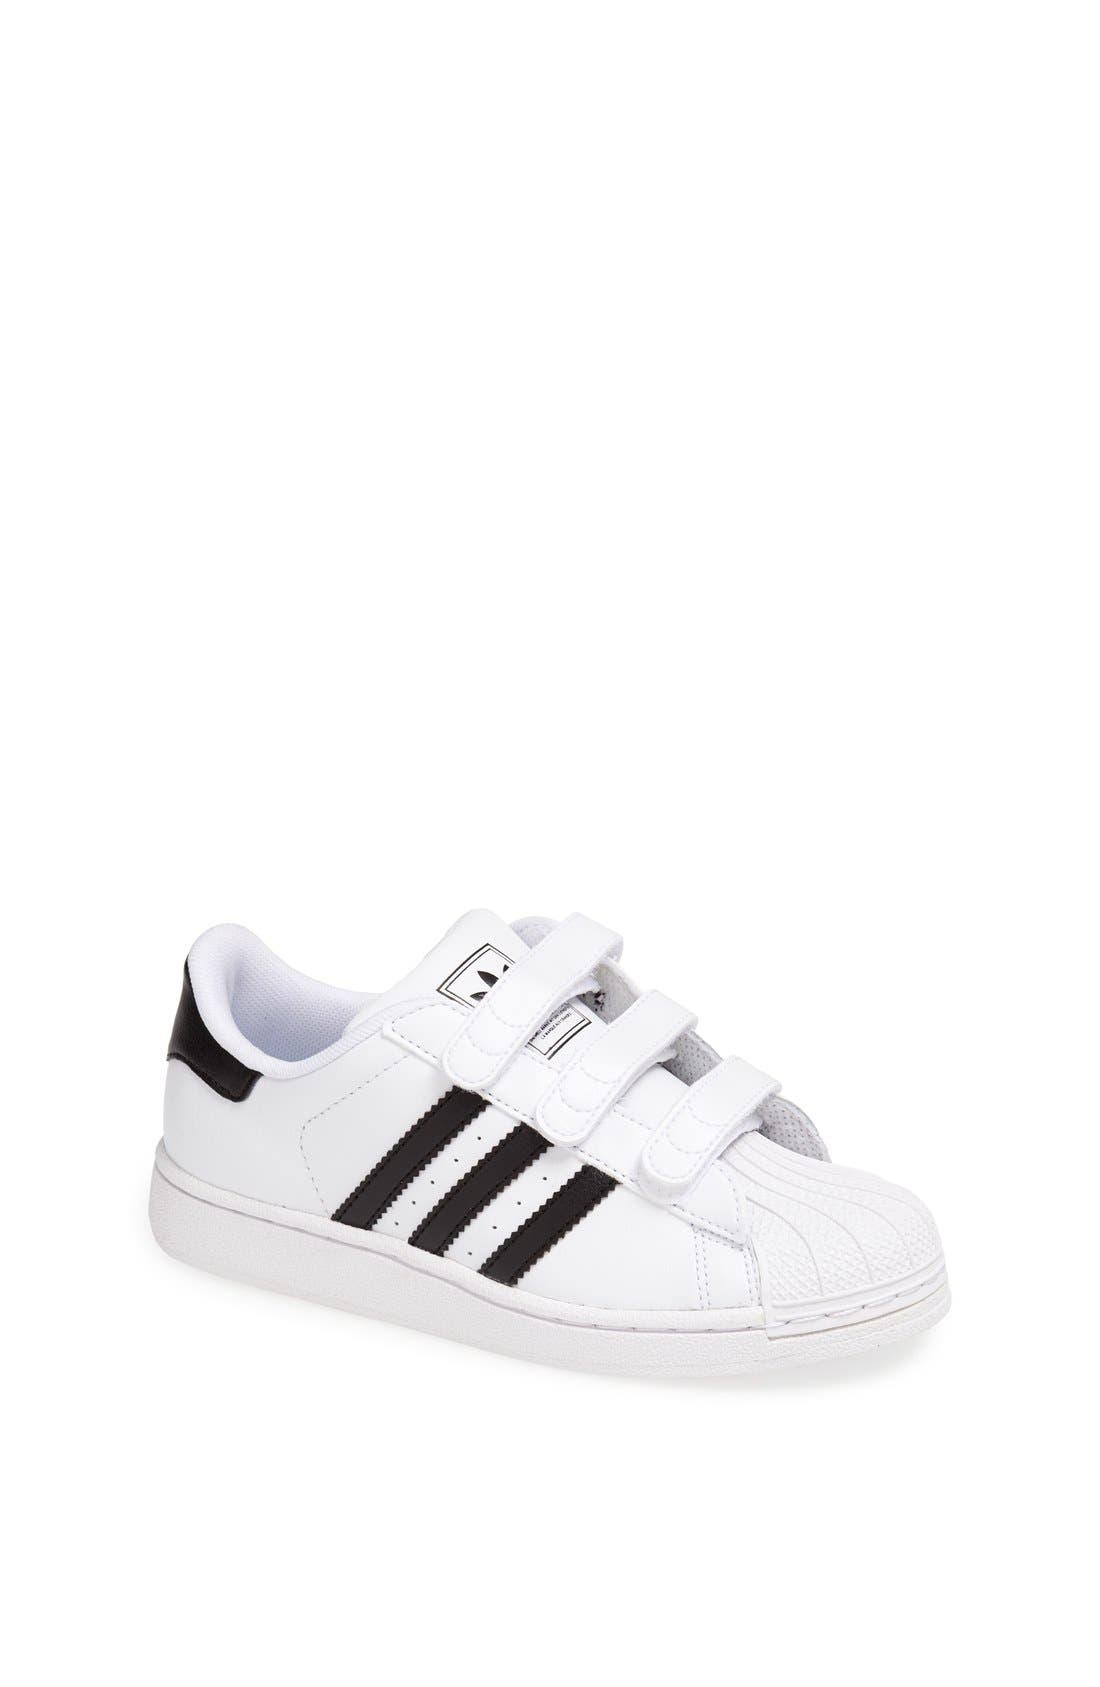 'Superstar 2' Sneaker,                             Main thumbnail 1, color,                             White/ Black